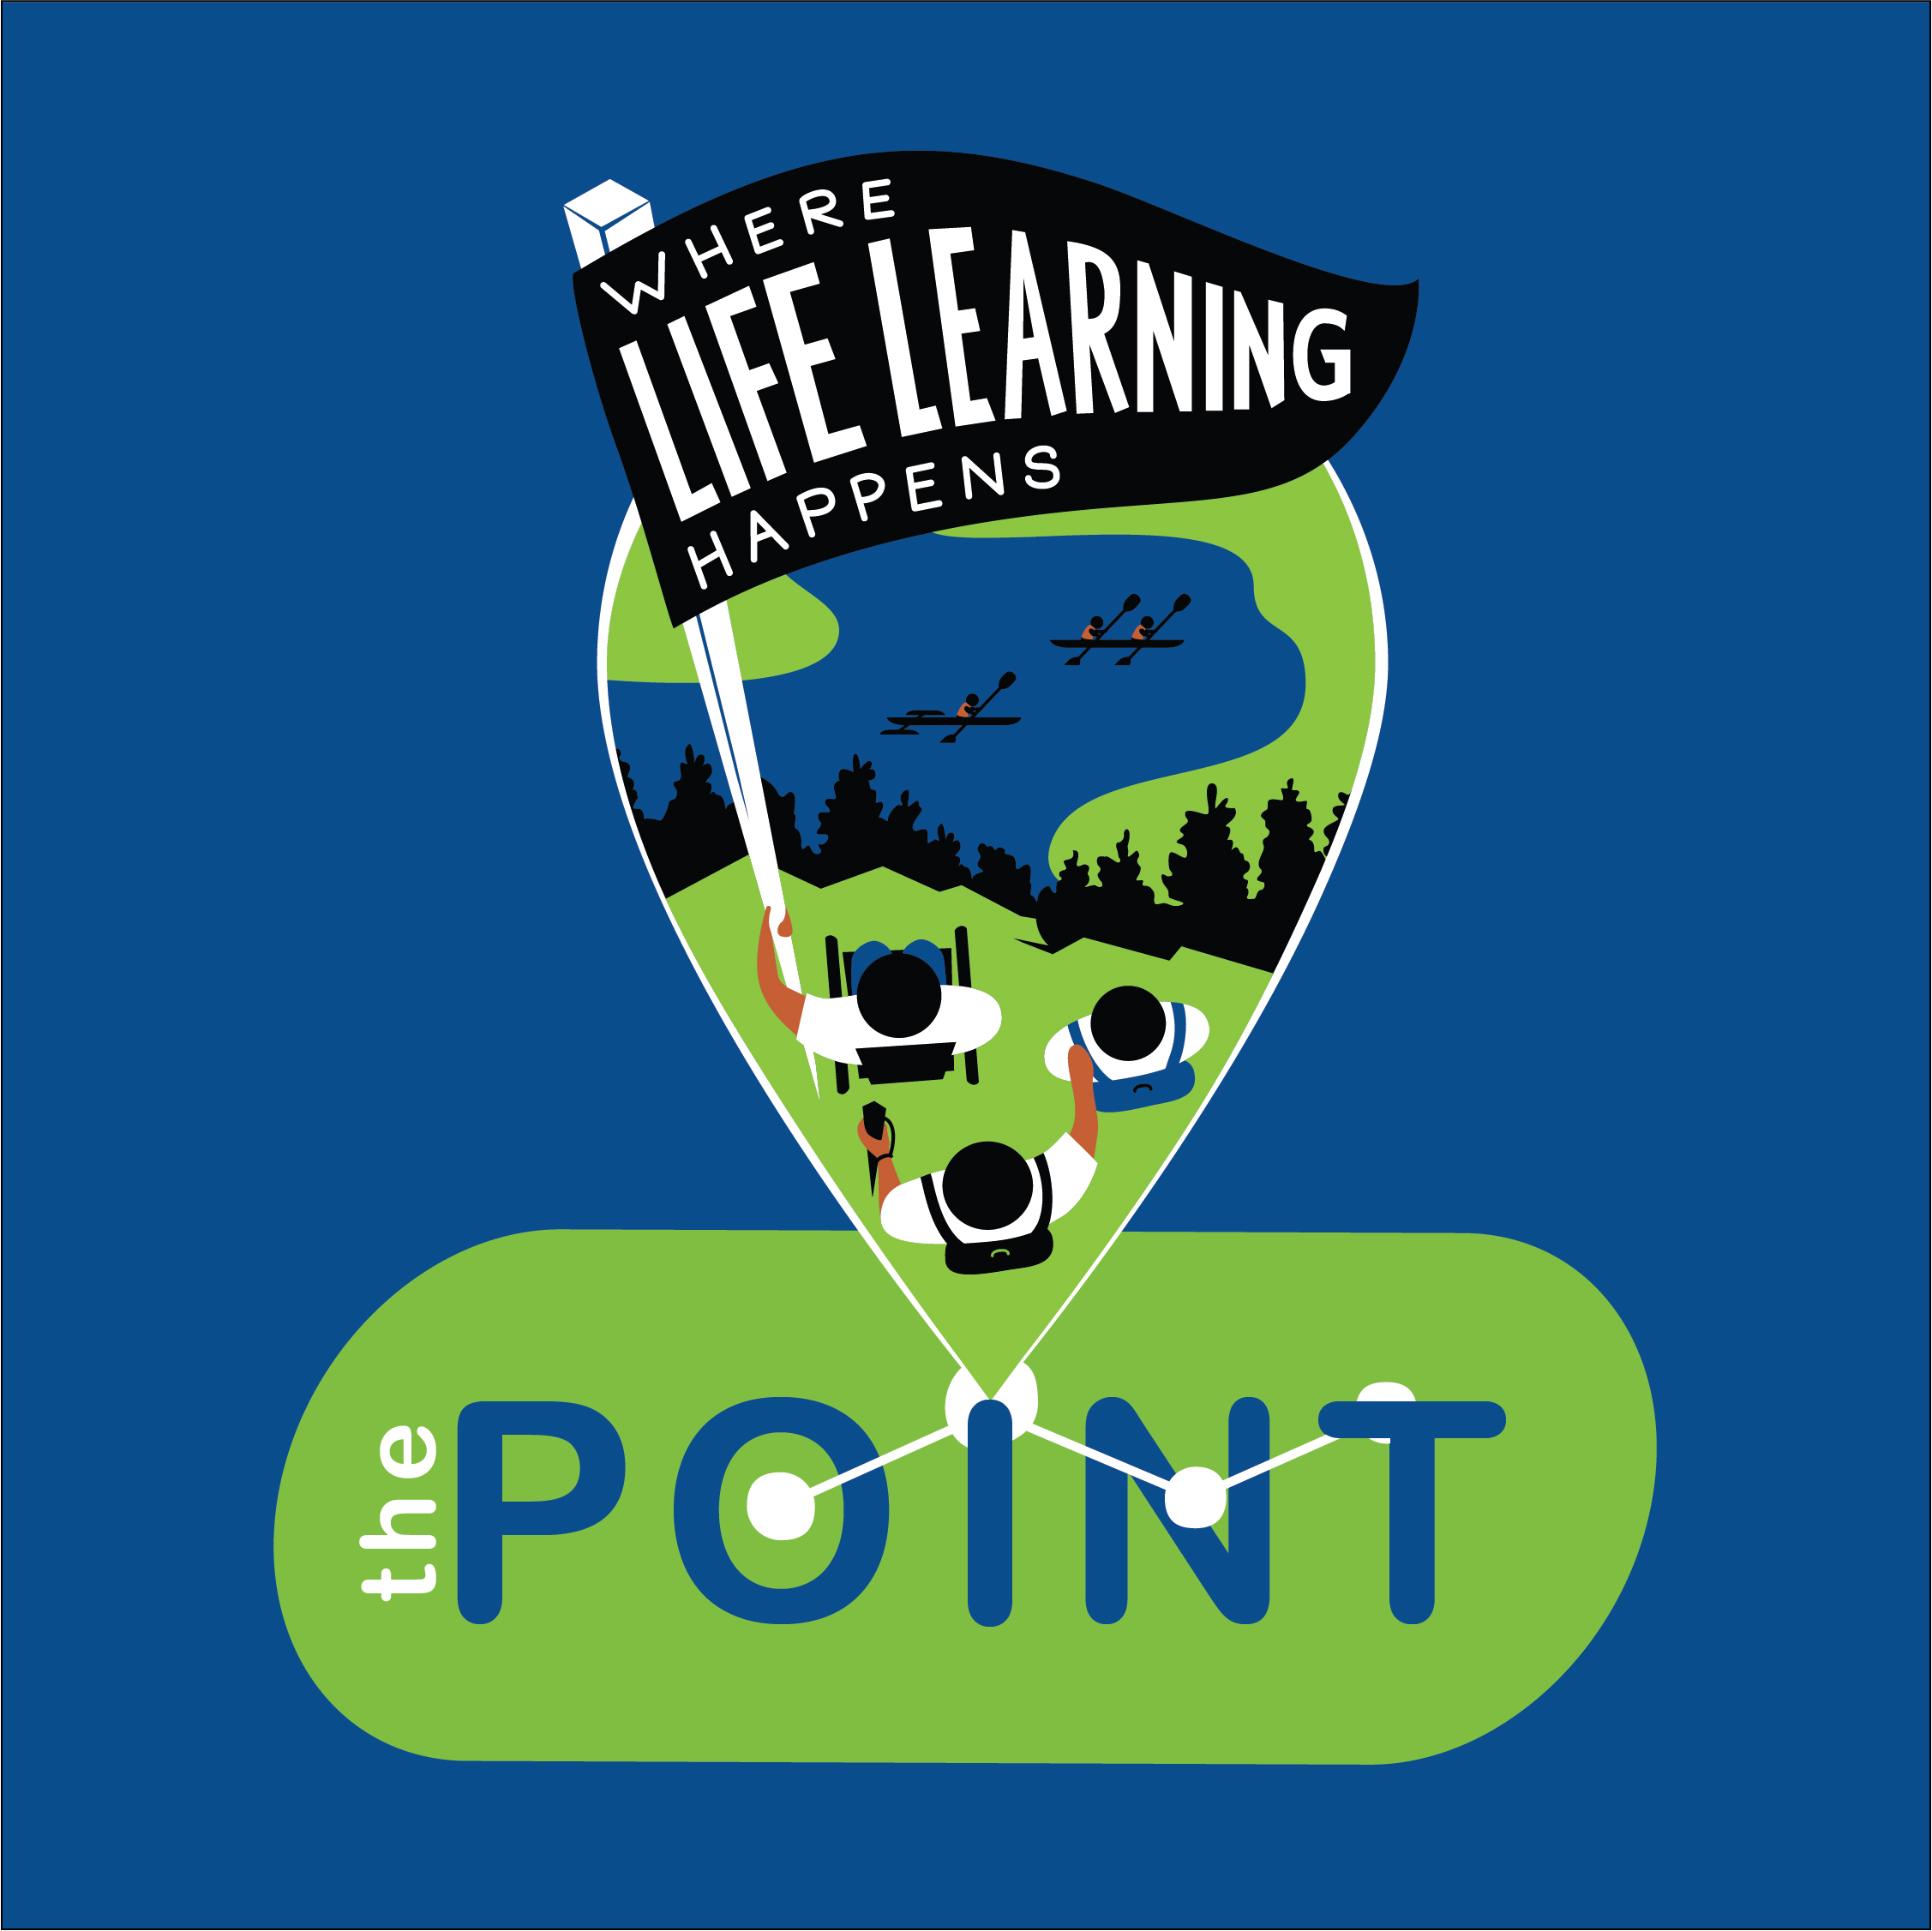 The Point by Waypoint Adventure